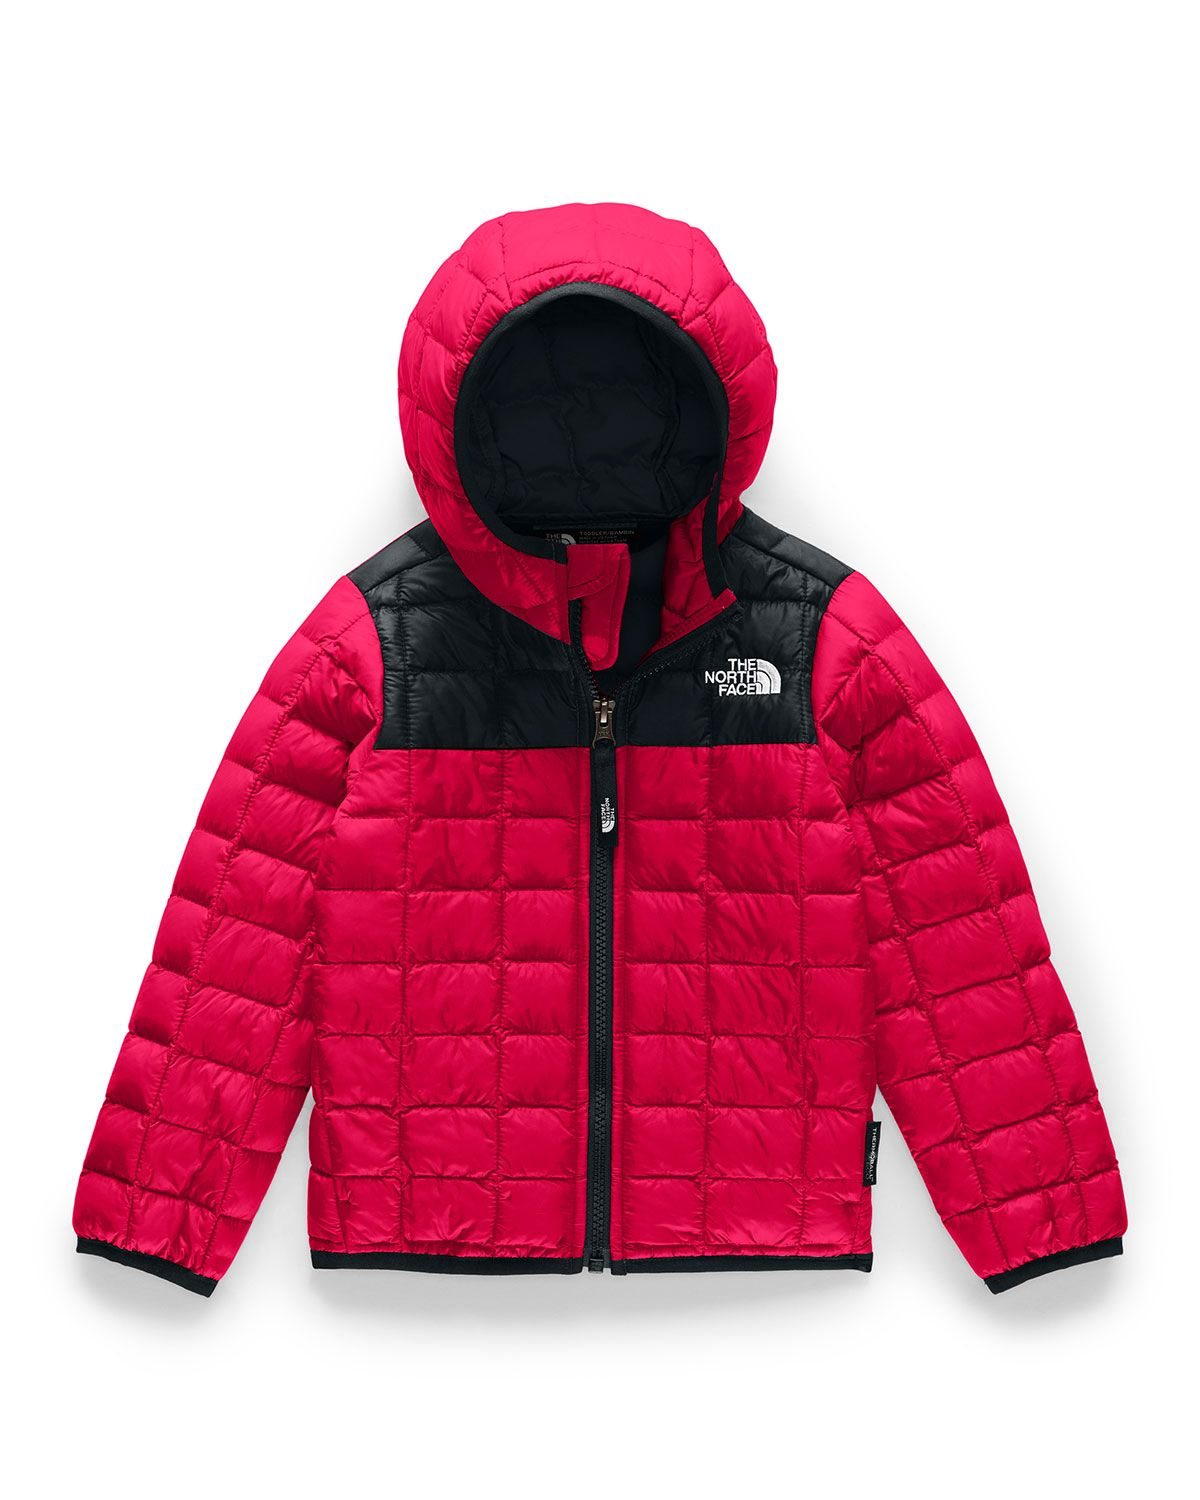 The North Face Unisex Thermoball Eco Jacket Little Kid In Tnf Red Modesens Youth Hoodies The North Face Hooded Jacket [ 1500 x 1200 Pixel ]